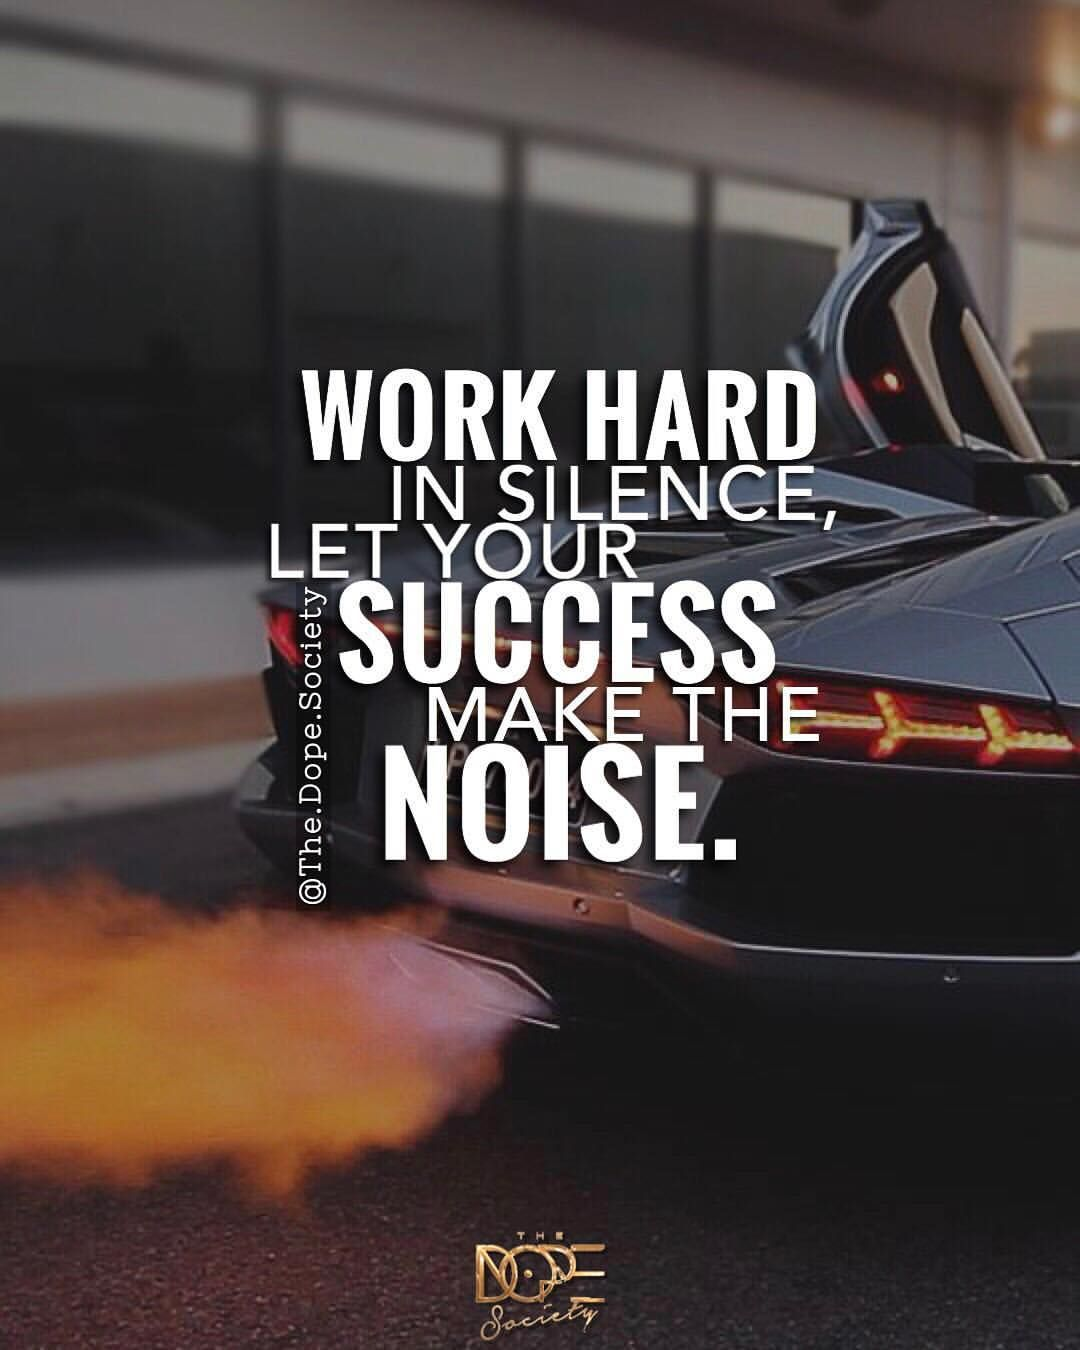 Inspirational Quotes On Pinterest: Work Hard In Silence, Let Your Success Make The Noise